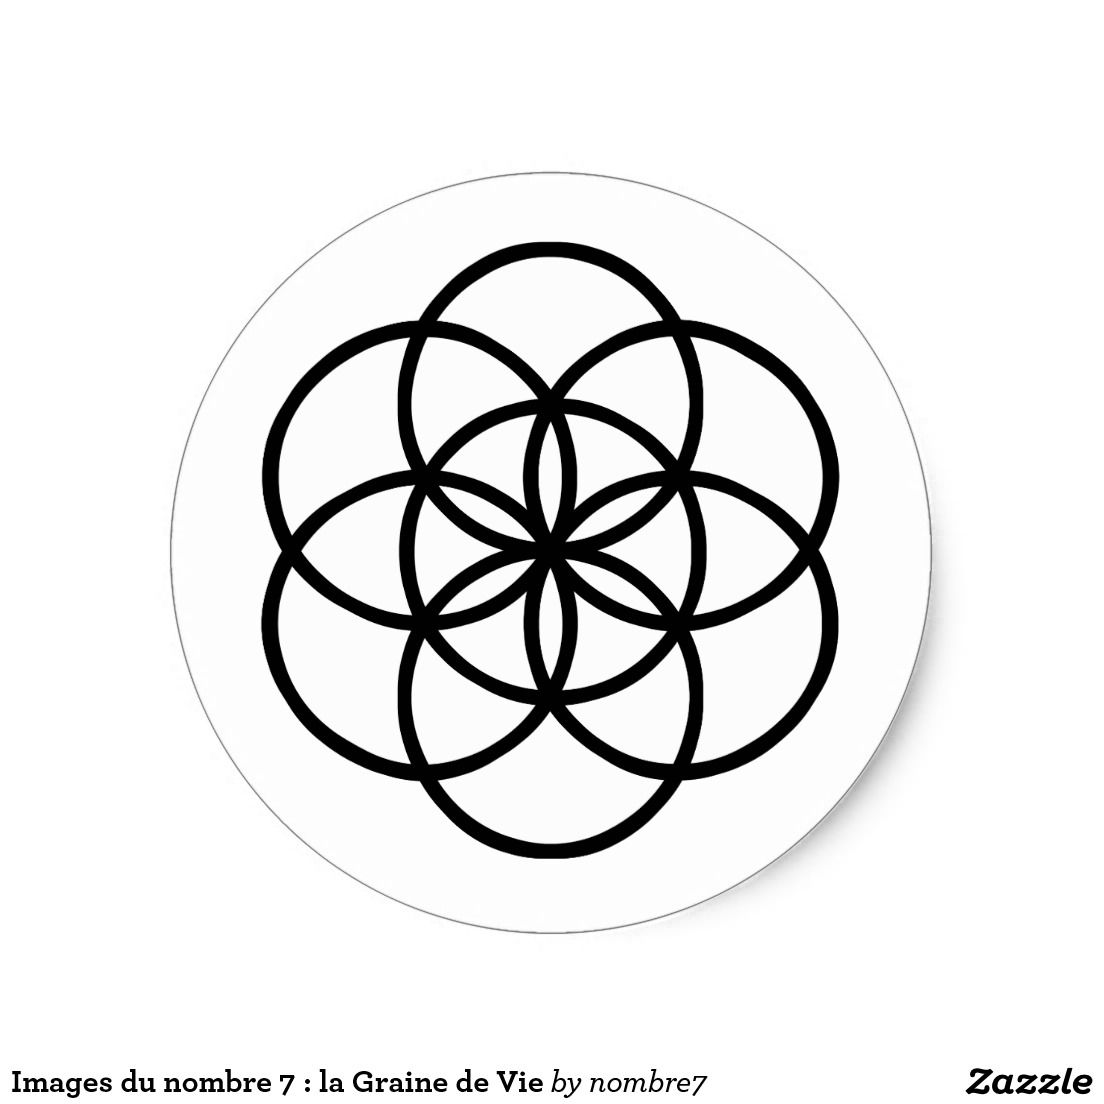 Sticker Rond Images Du Nombre 7 La Graine De Vie Zazzle Fr Graine De Vie Graine La Vie